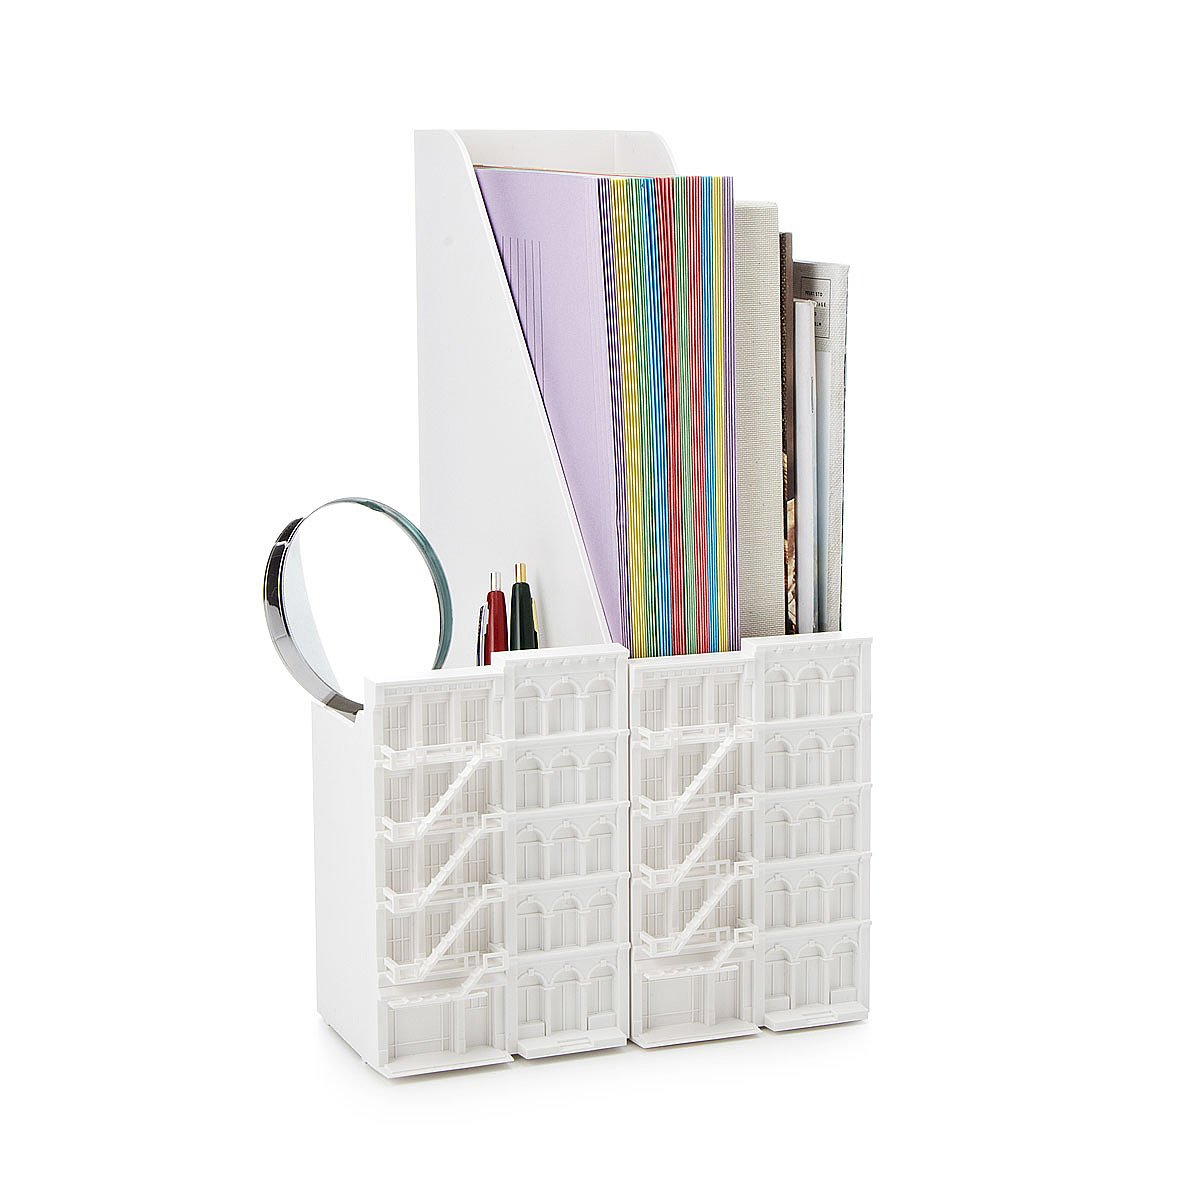 Architectural desk organizers office supplies - Desk accessories and organizers ...